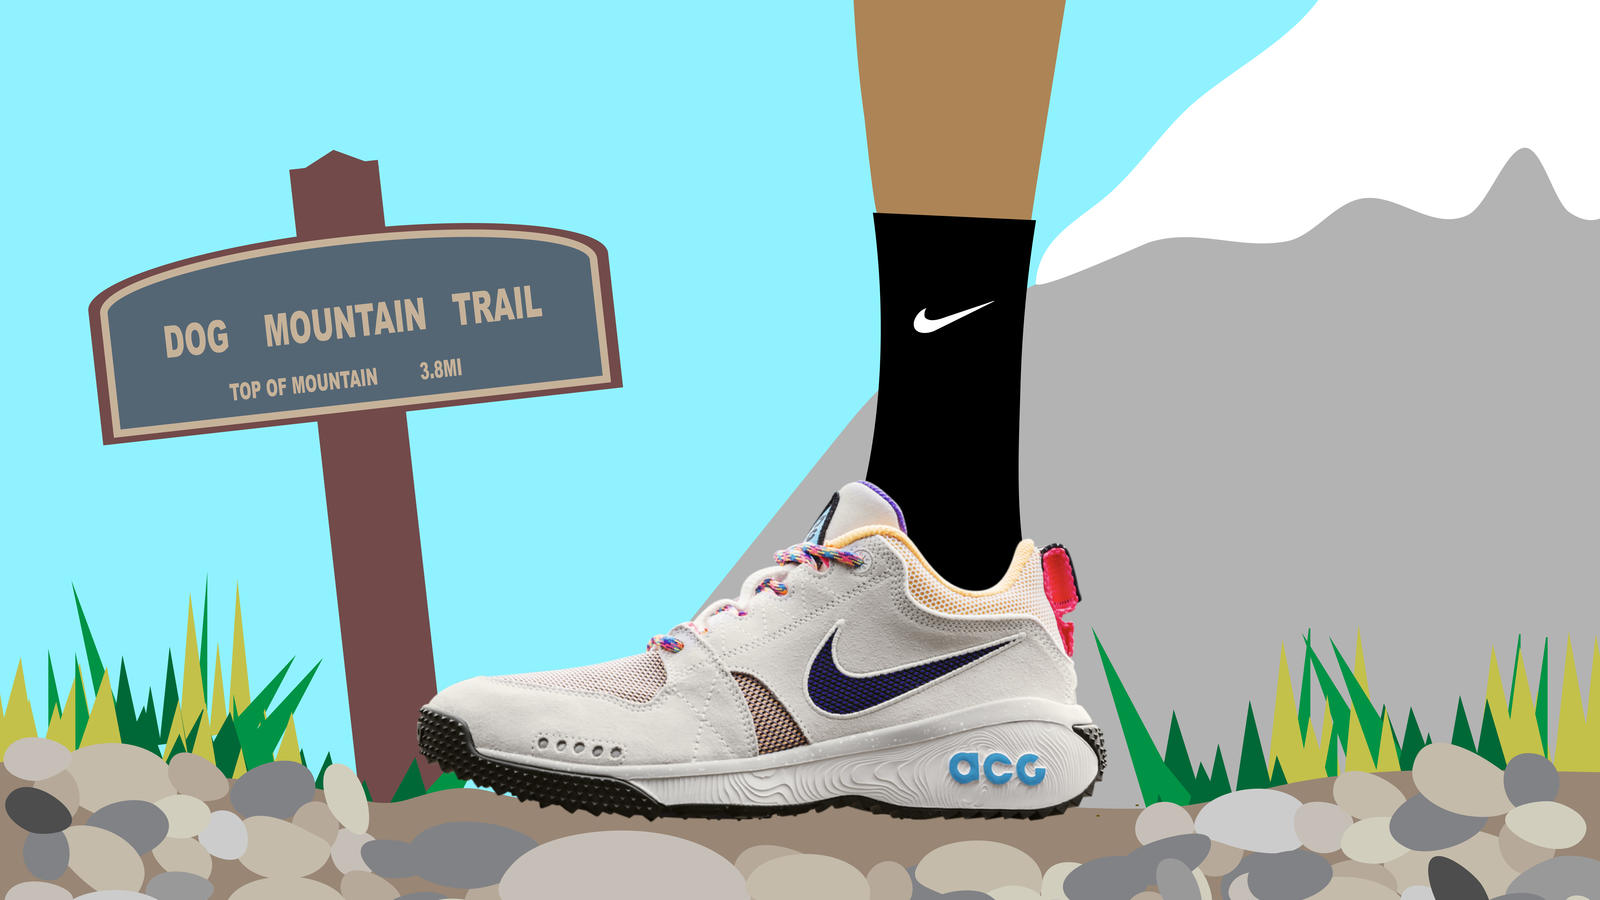 Nike ACG Dog Mountain Nike News